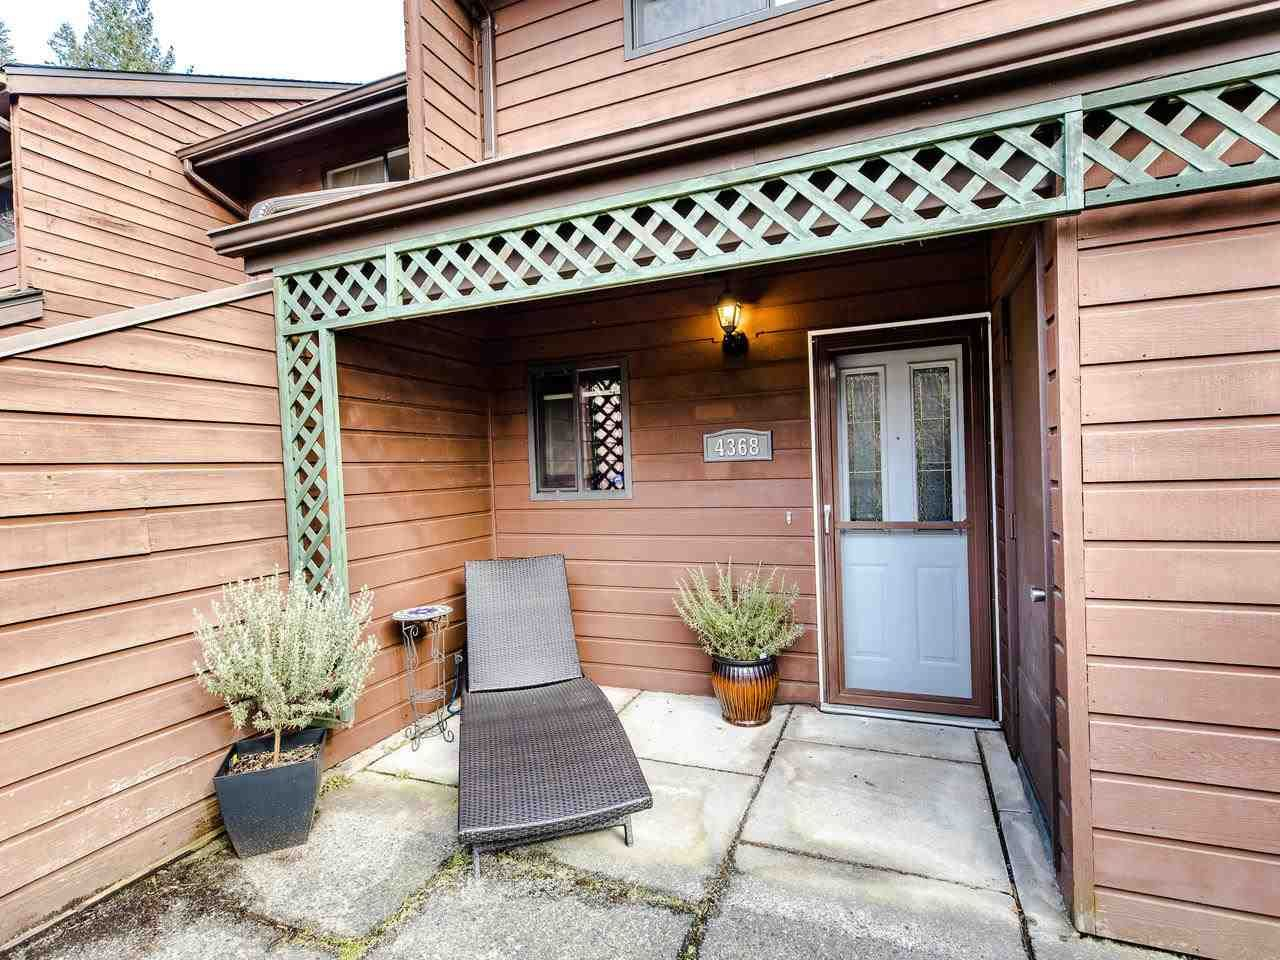 """Main Photo: 4368 GARDEN GROVE Drive in Burnaby: Greentree Village Townhouse for sale in """"GREENTREE VILLAGE"""" (Burnaby South)  : MLS®# R2439137"""